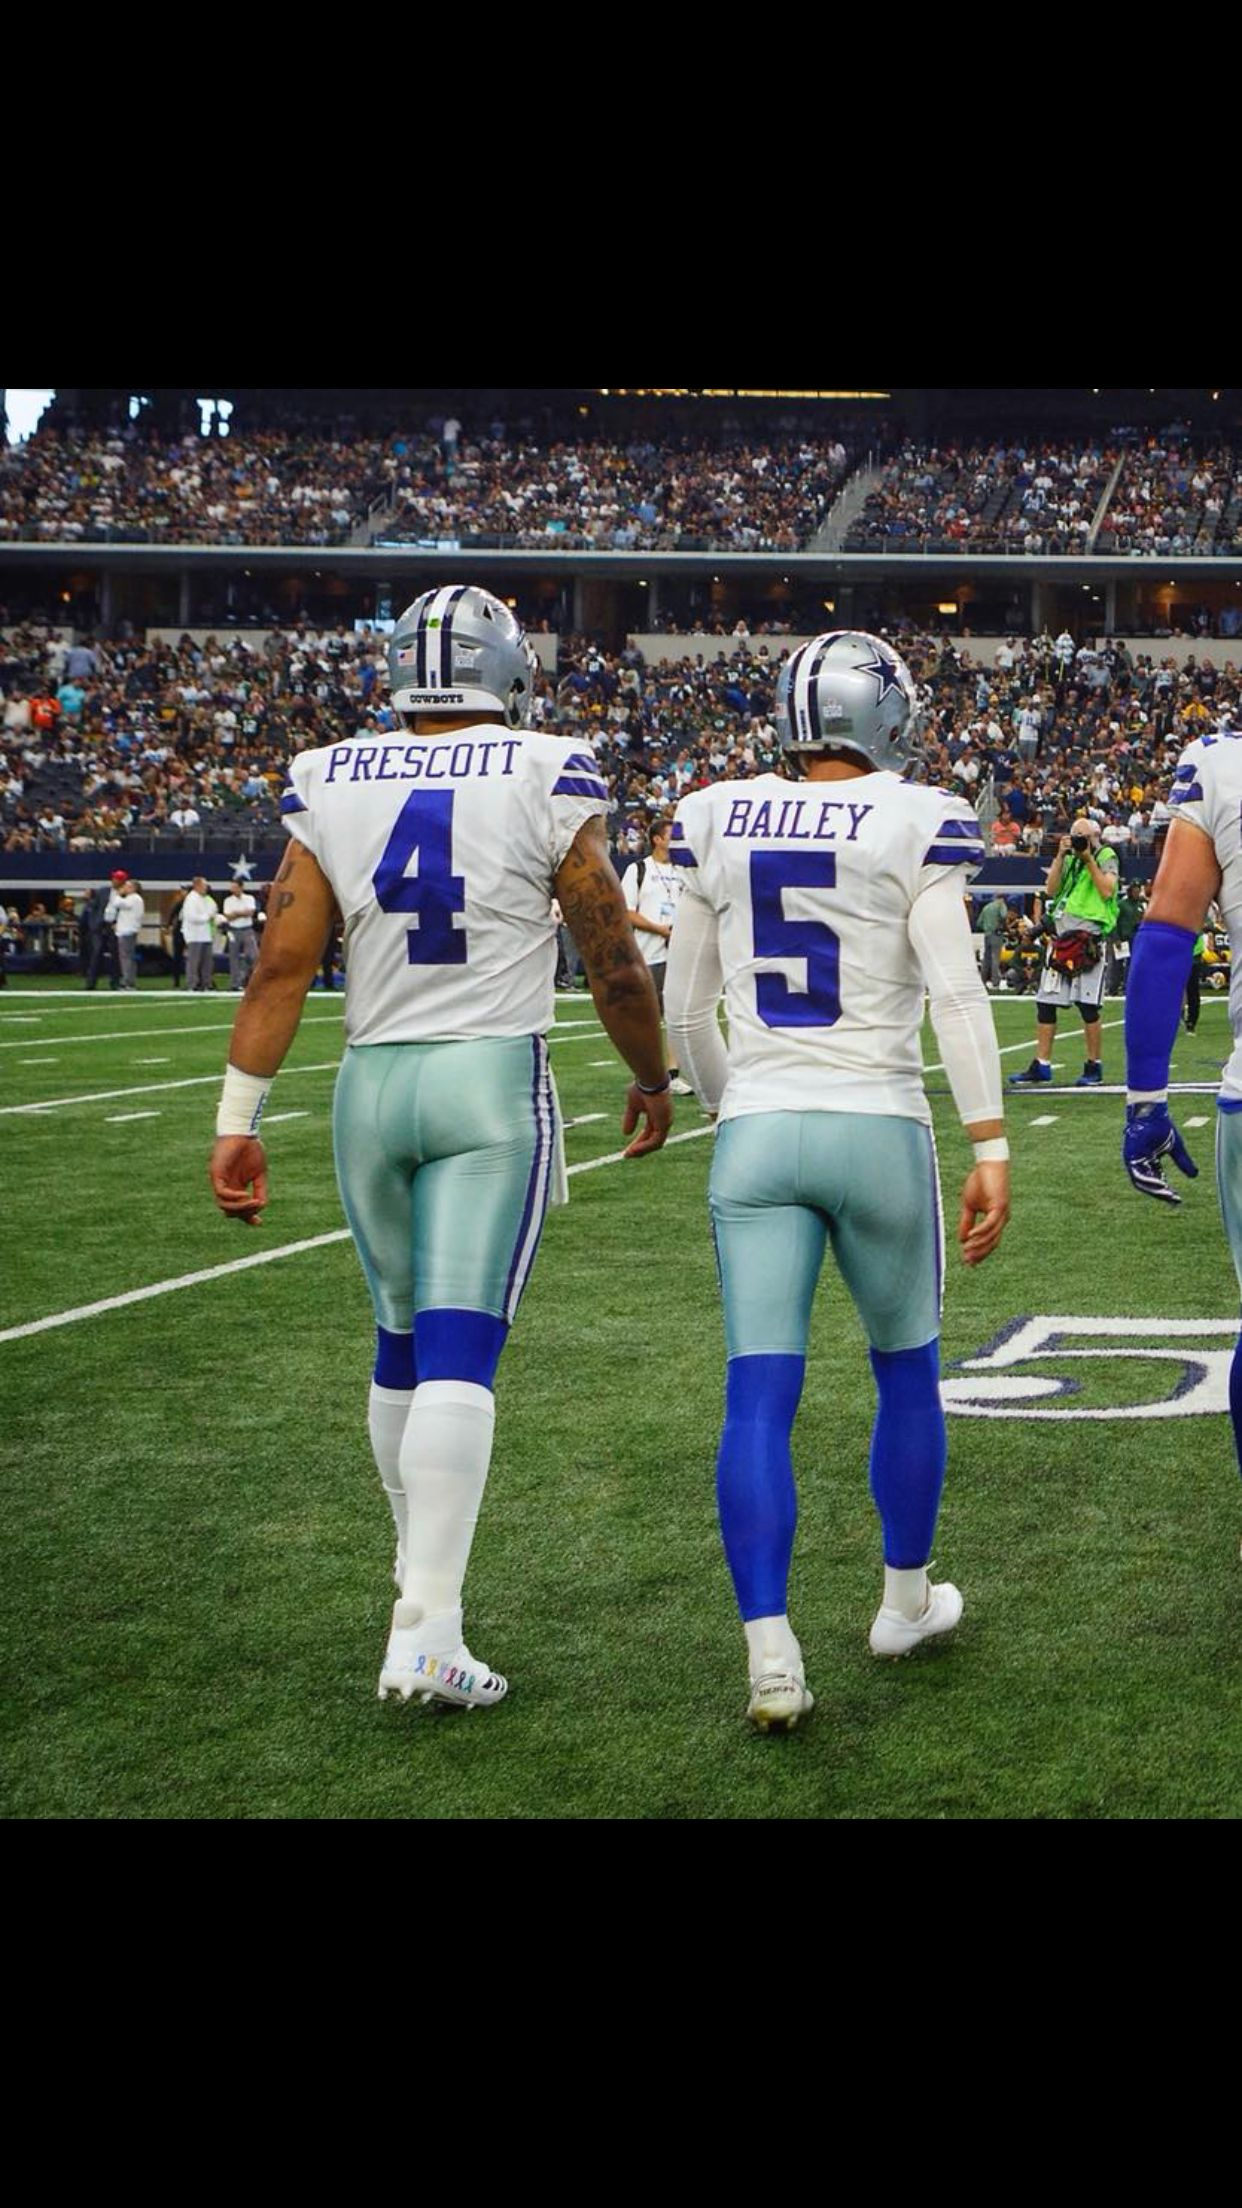 Pin By Cassie Johnson On Dallas Cowboys Cowboys Football Game Dallas Cowboys Dallas Cowboys Football